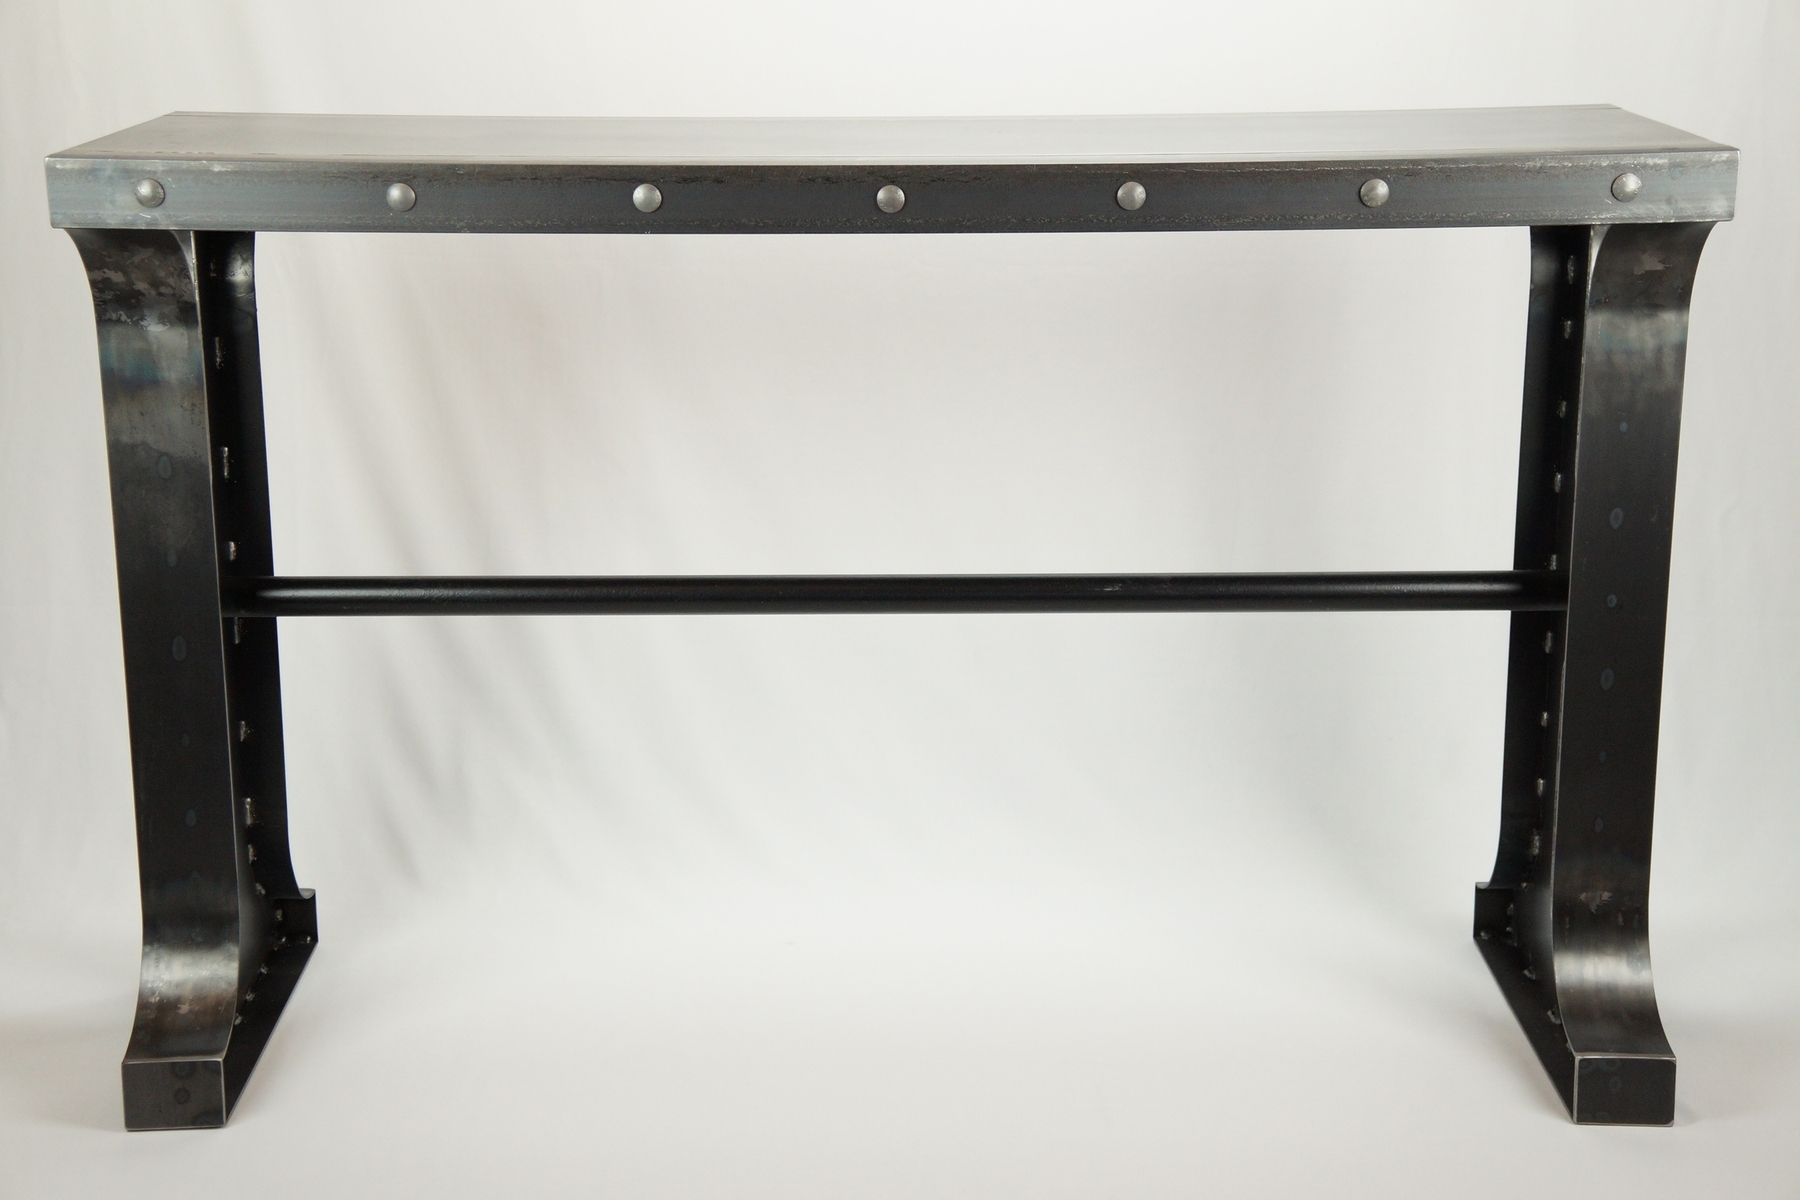 buy a custom made industrial metal console table made to. Black Bedroom Furniture Sets. Home Design Ideas